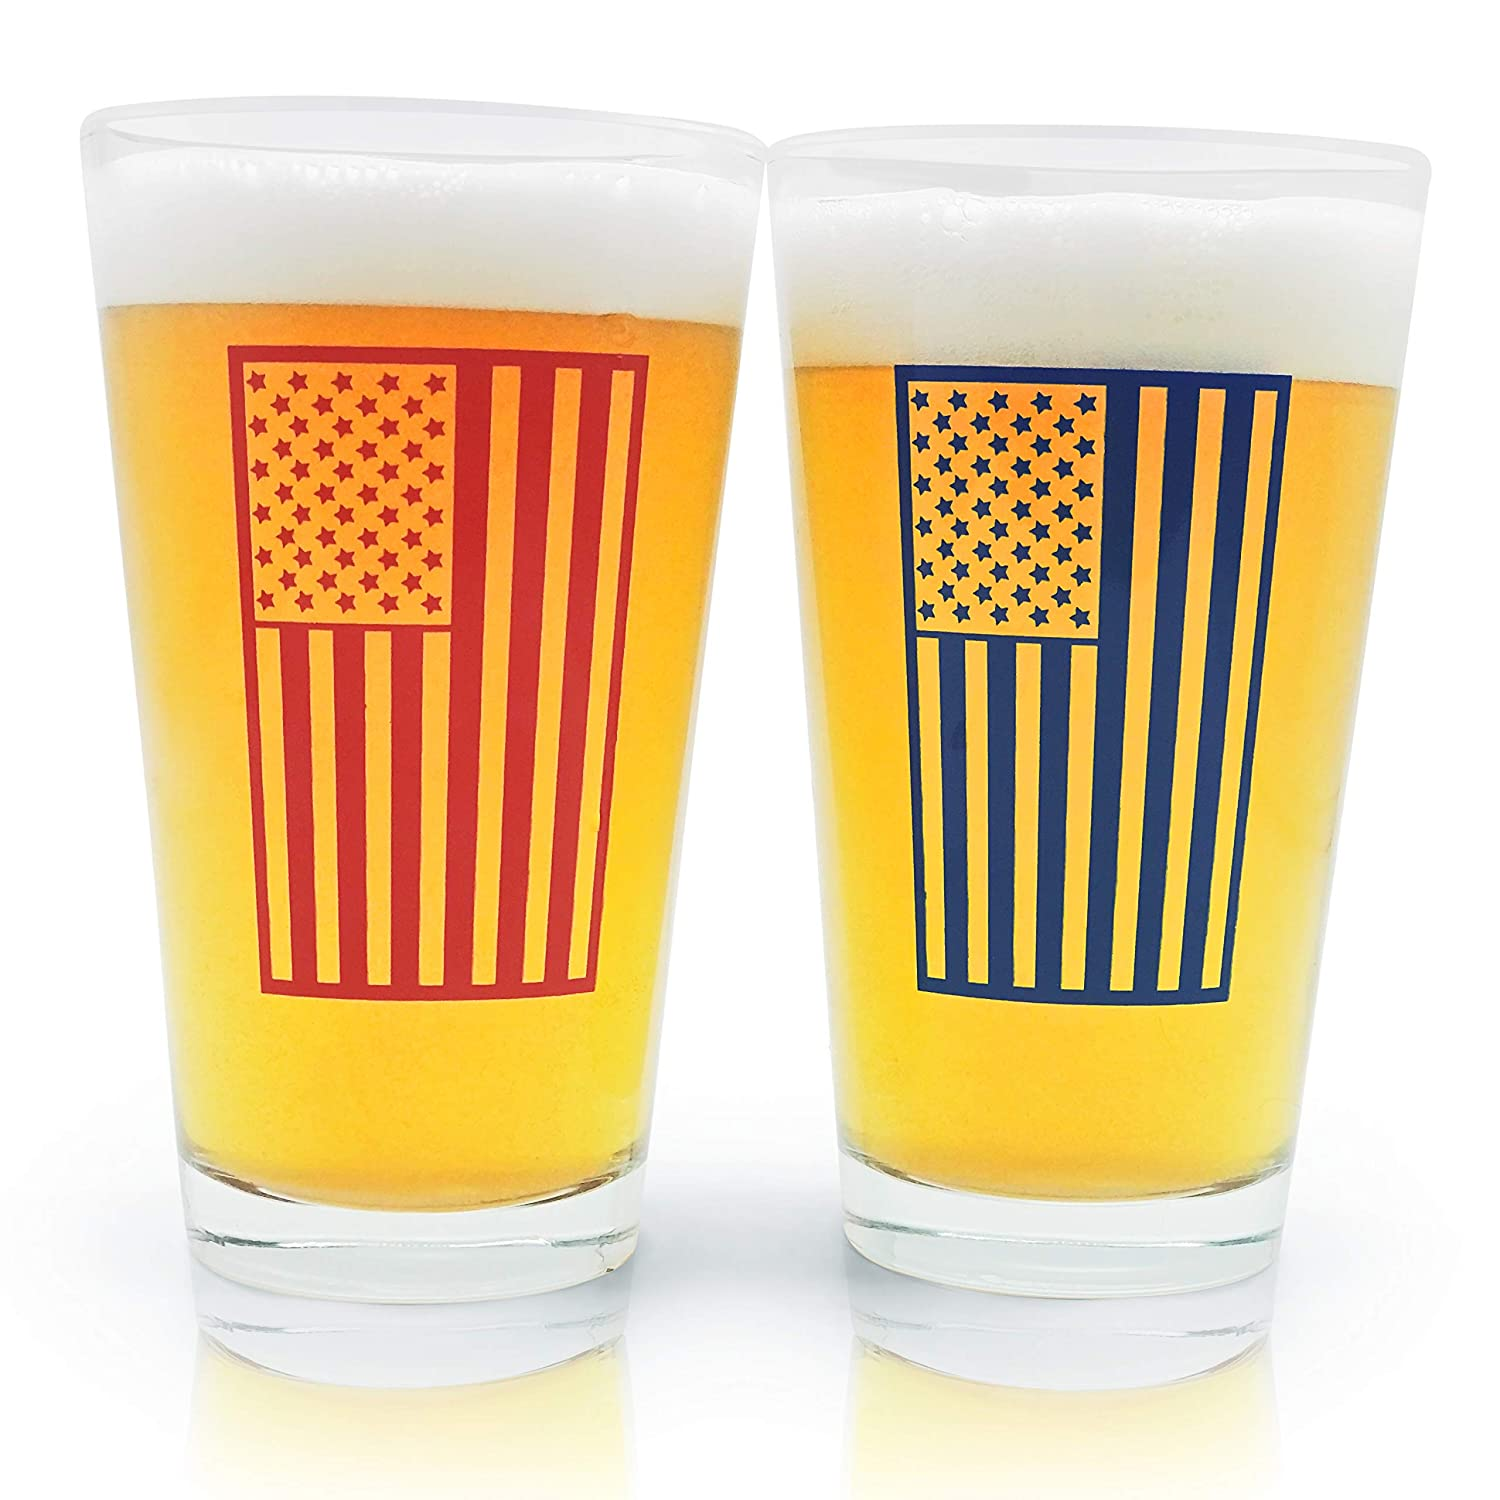 Pint Beer Glass 16oz Set of 2 USA American Flag Pub Mixing Glasses. Nice Birthday Present or Gift for Dad or any Veteran - Perfect for the Kitchen, Bar, Christmas, 4th of July Party! Beer City Glass